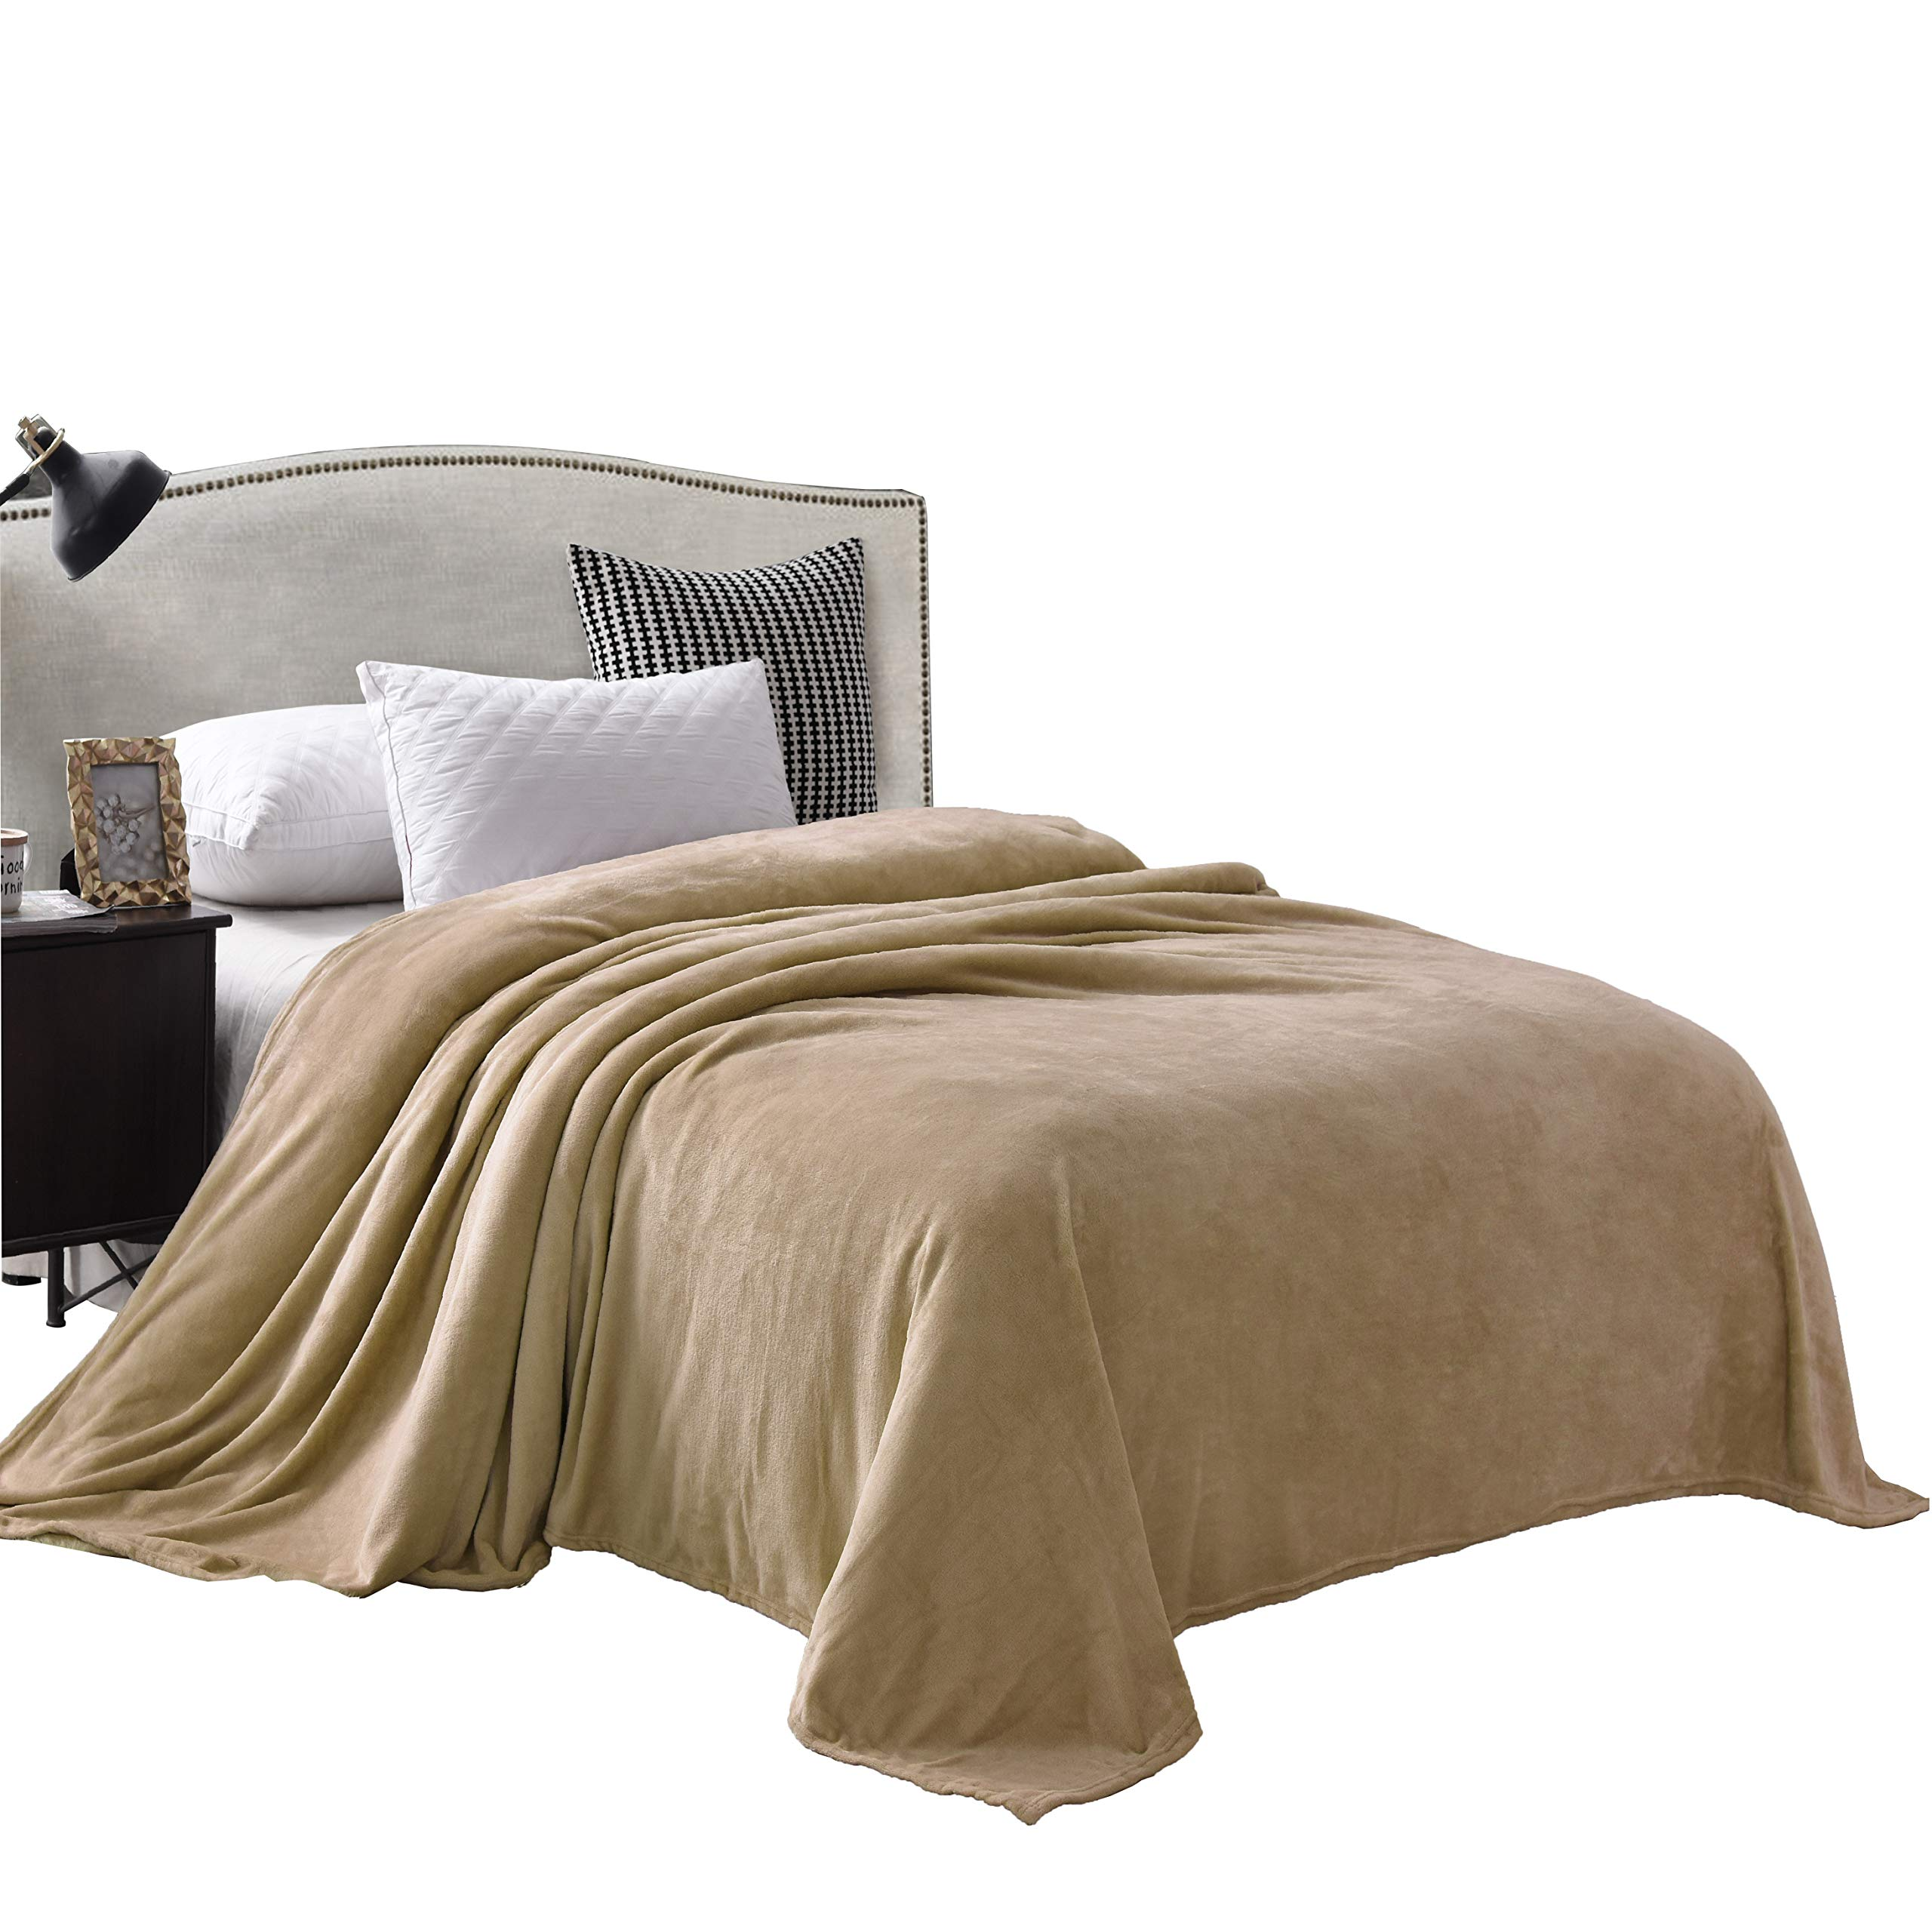 """Exclusivo Mezcla Twin Size Flannel Fleece Velvet Plush Bed Blanket as Bedspread/Coverlet/Bed Cover (90"""" x 66"""", Camel) - Soft, Lightweight, Warm and Cozy"""